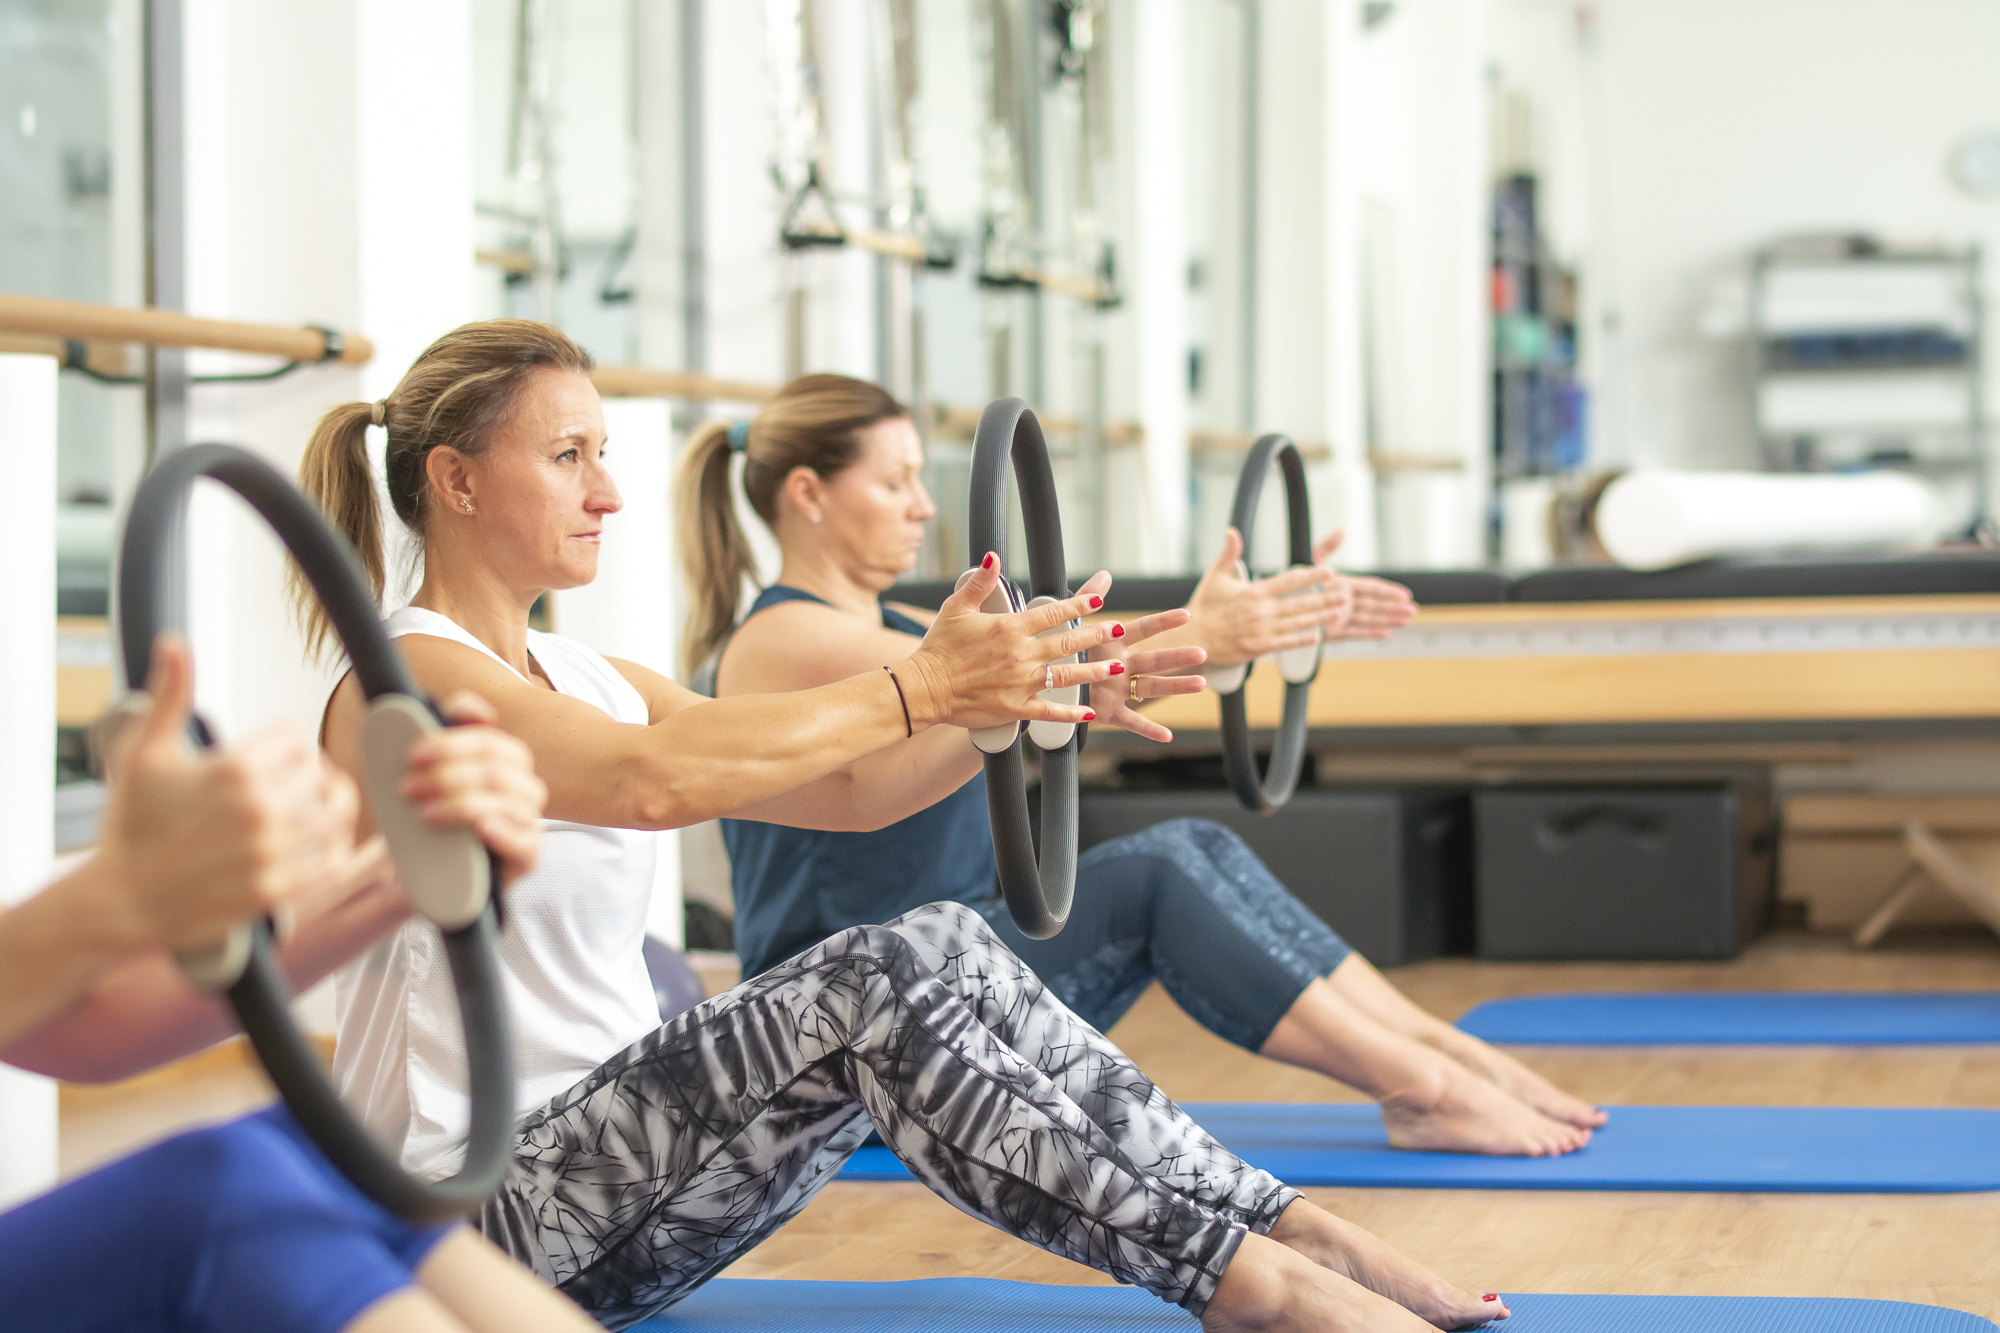 Group Pilates class using the Pilates magic circle. Based in a studio in Thames Ditton, Surrey.